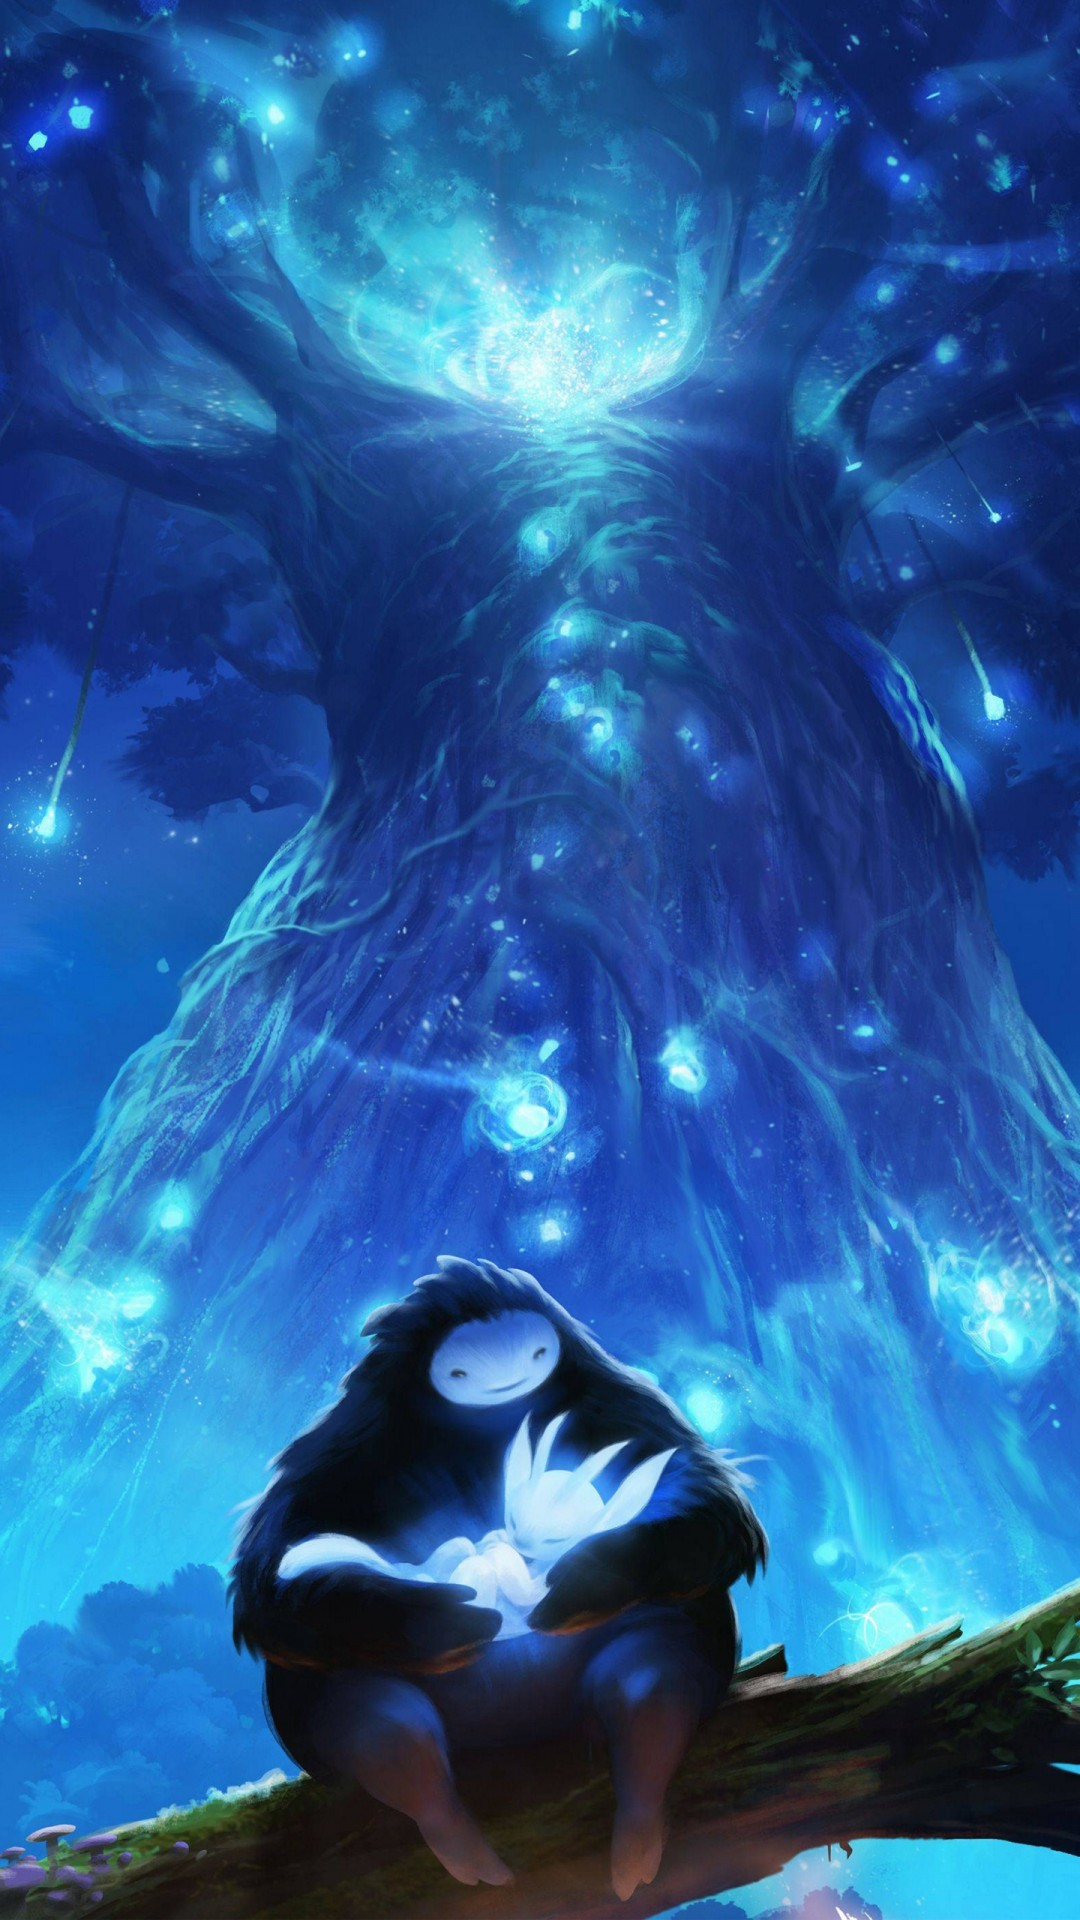 Iphone 6s Plus Wallpaper Hd Ori And The Blind Forest 4k Wallpapers Hd Wallpapers